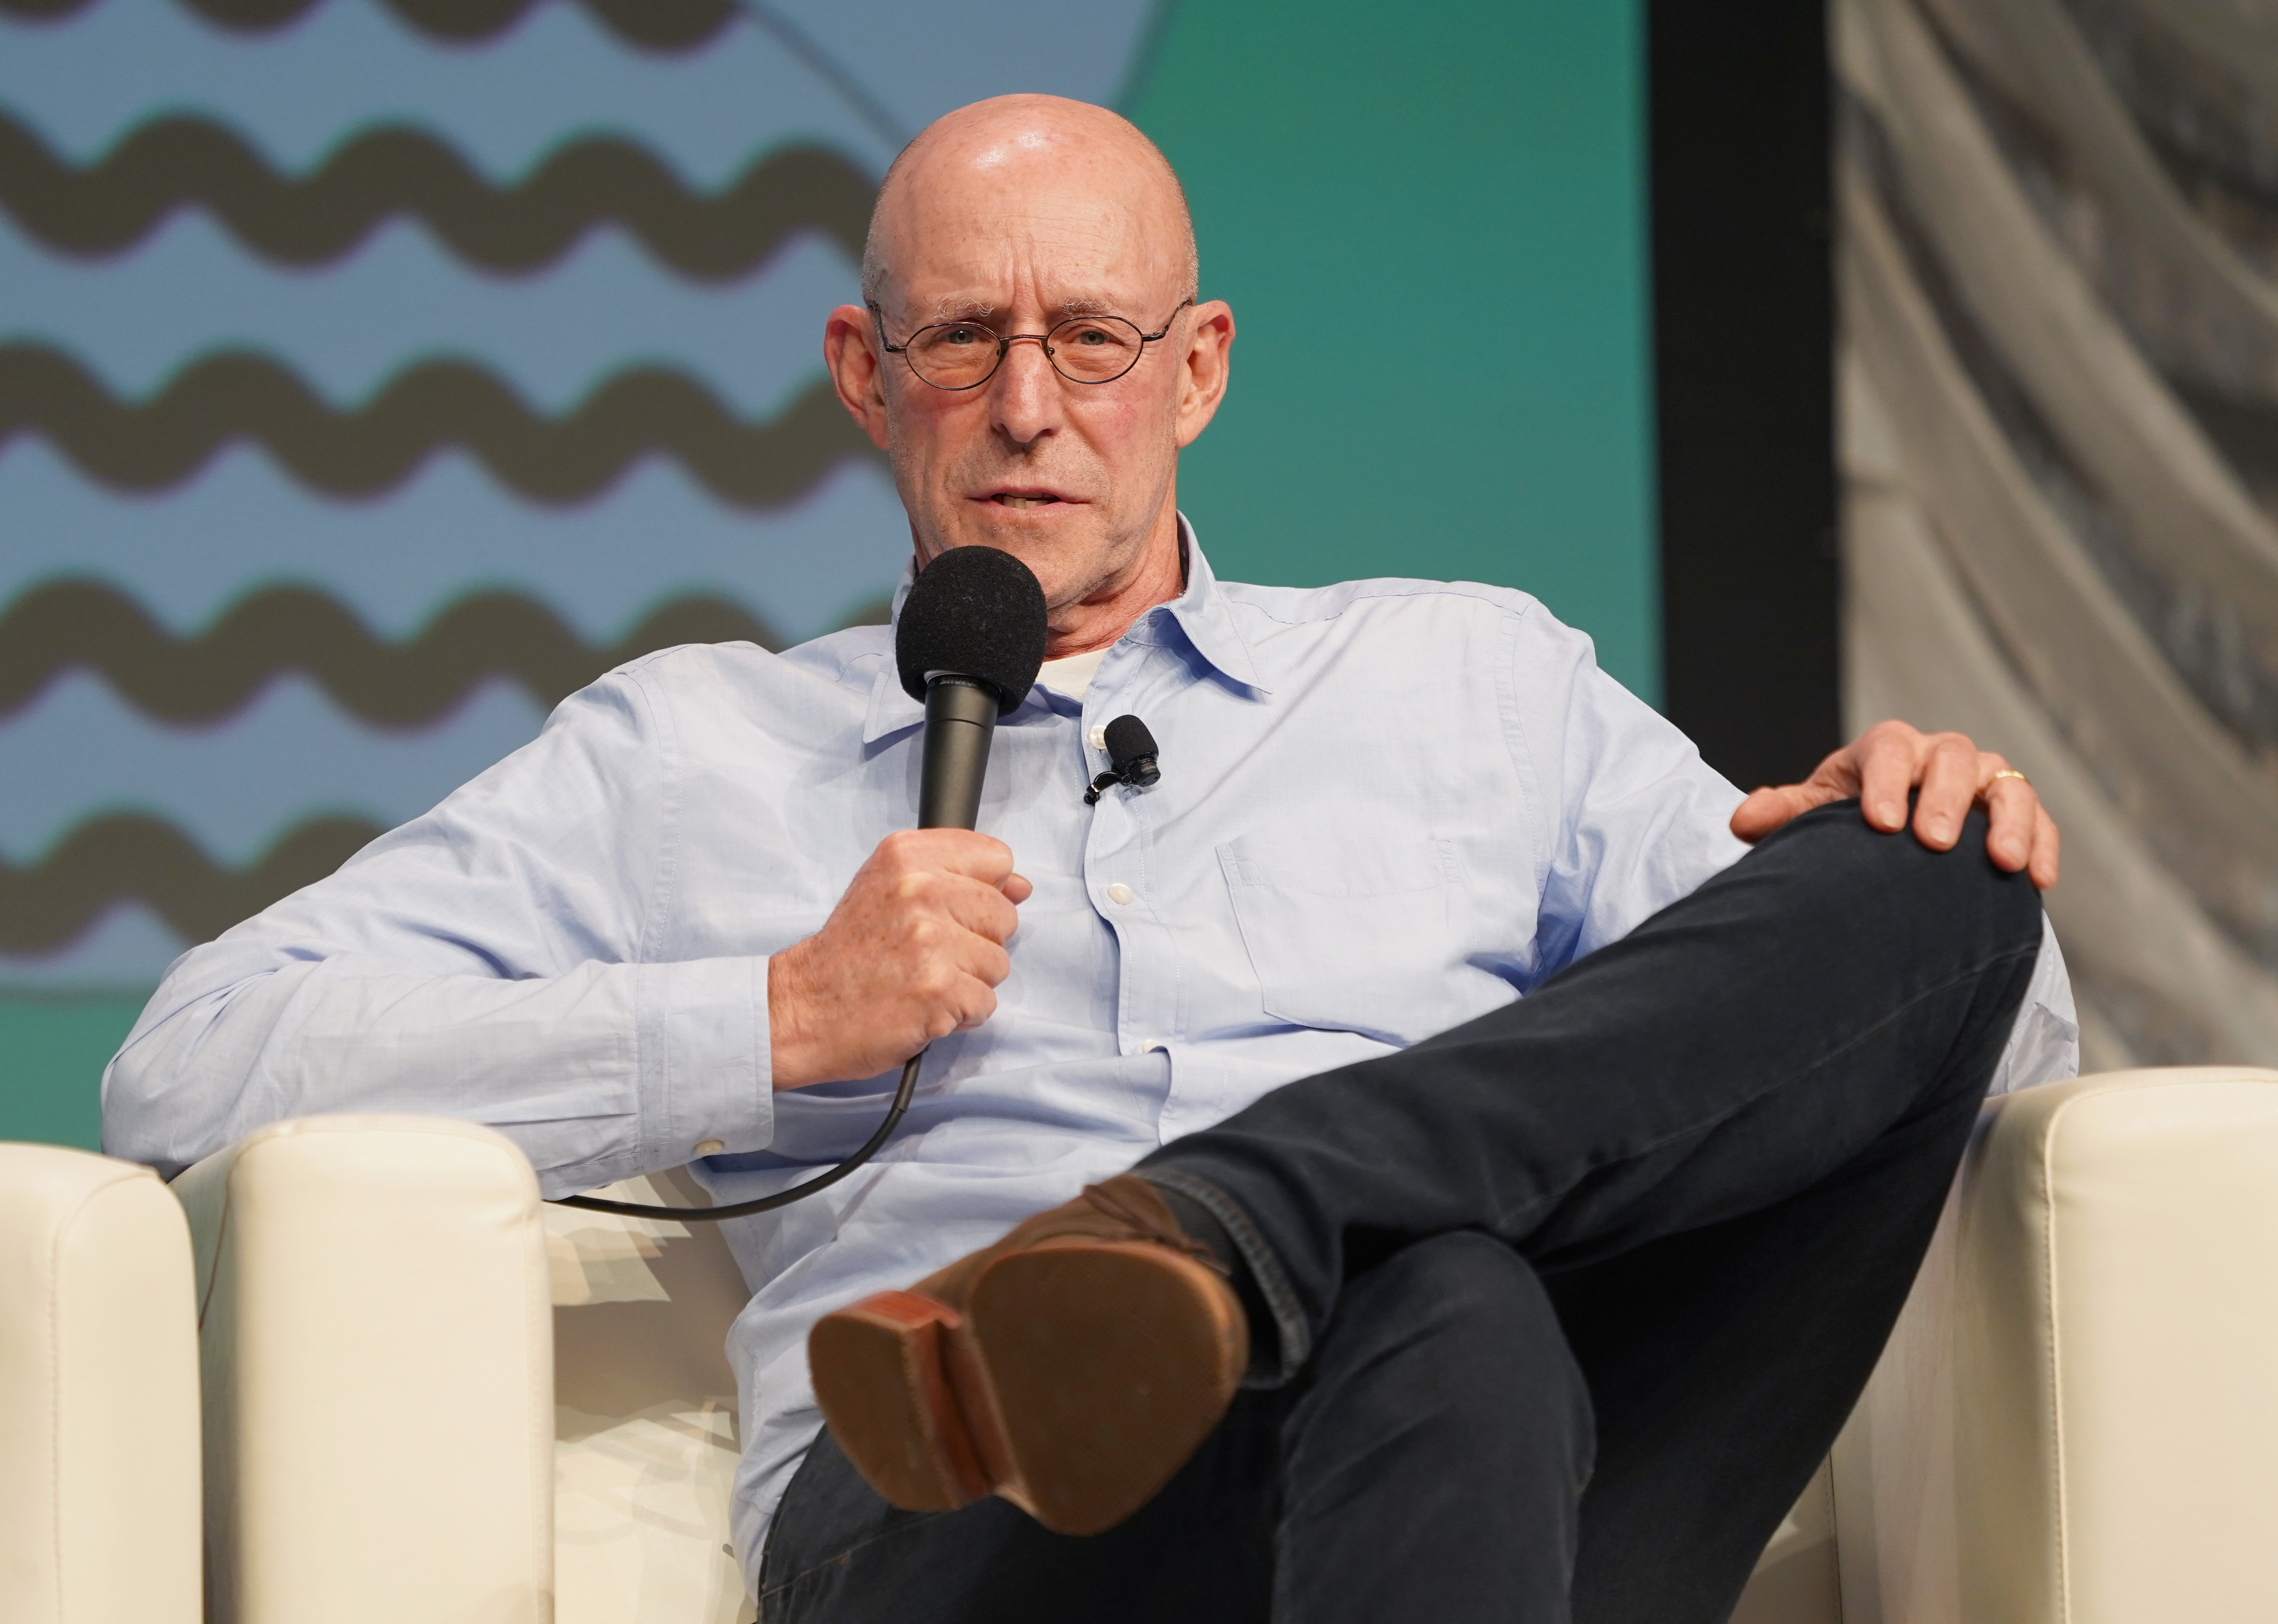 Featured Session: Michael Pollan And Tim Ferriss - 2019 SXSW Conference and Festivals